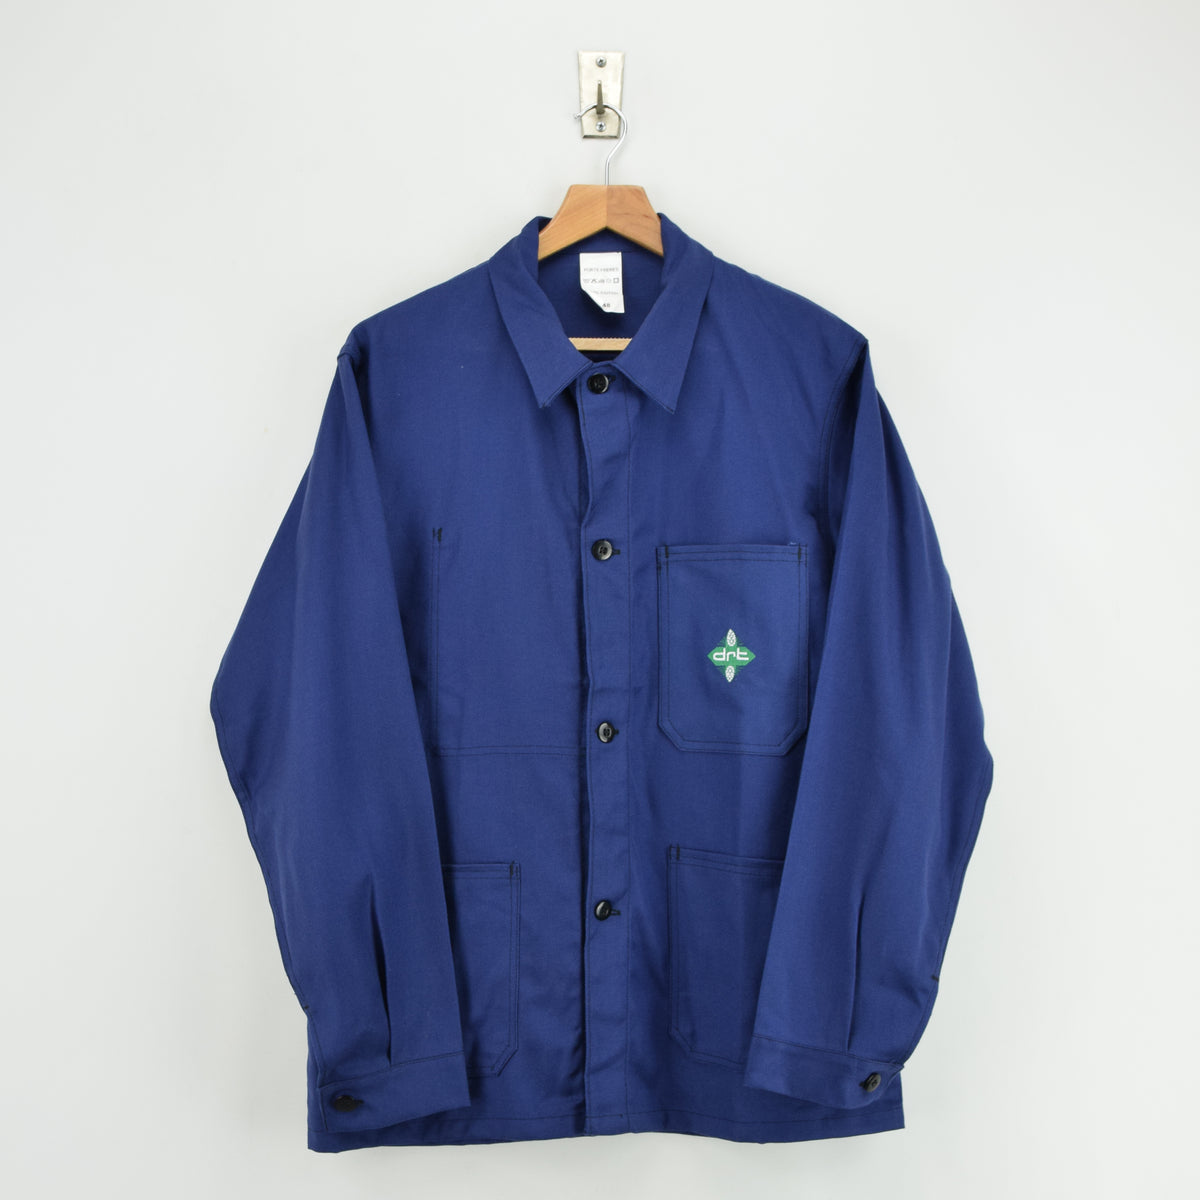 Vintage French Worker Indigo Blue Deadstock Sanforized Cotton Chore Jacket M front